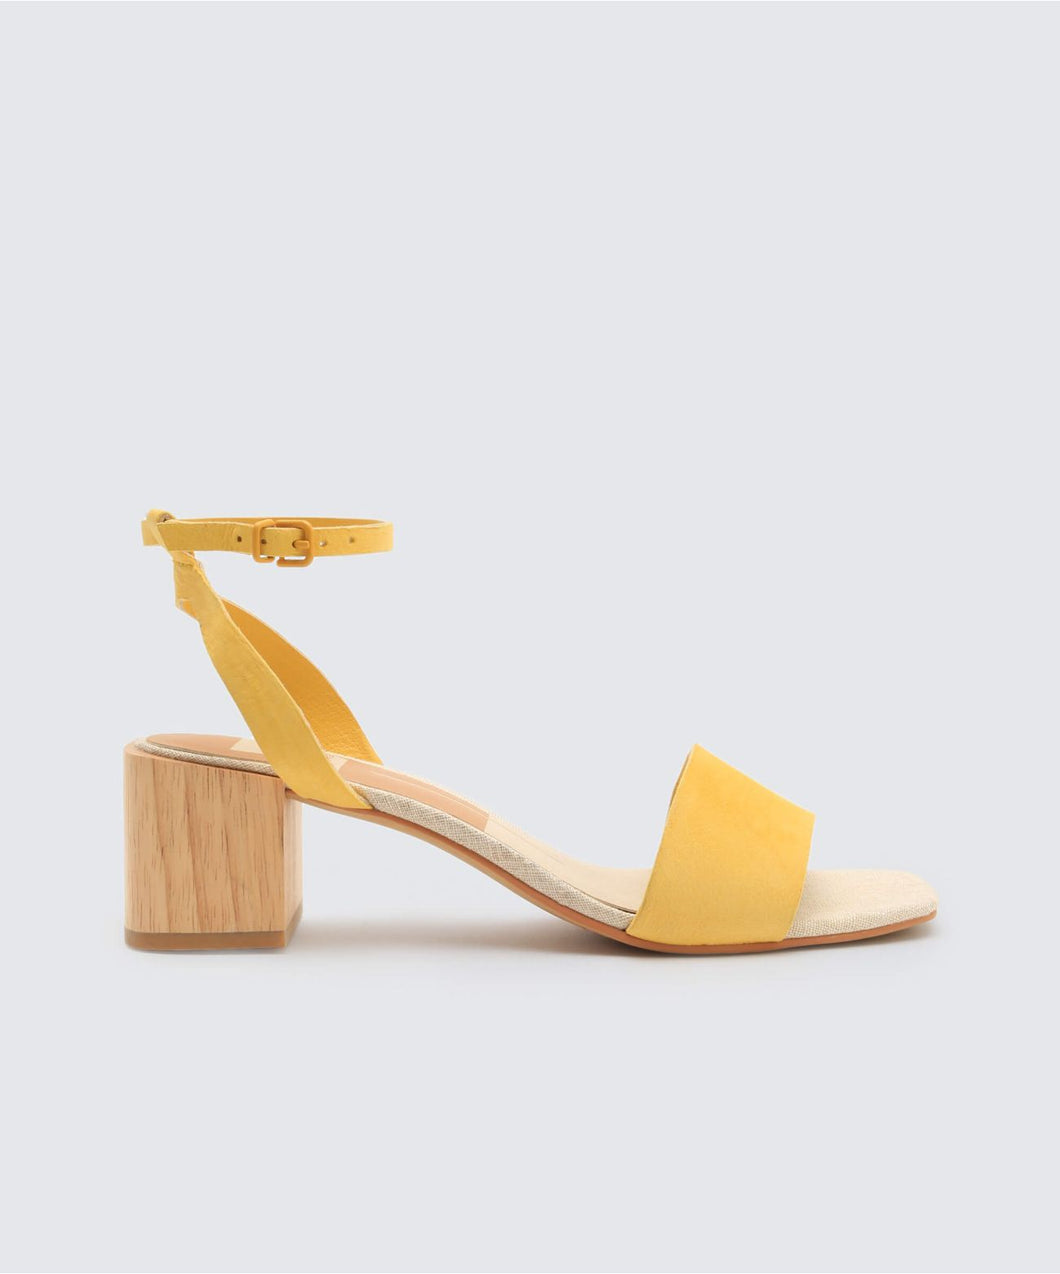 ZARITA SANDALS YELLOW -   Dolce Vita